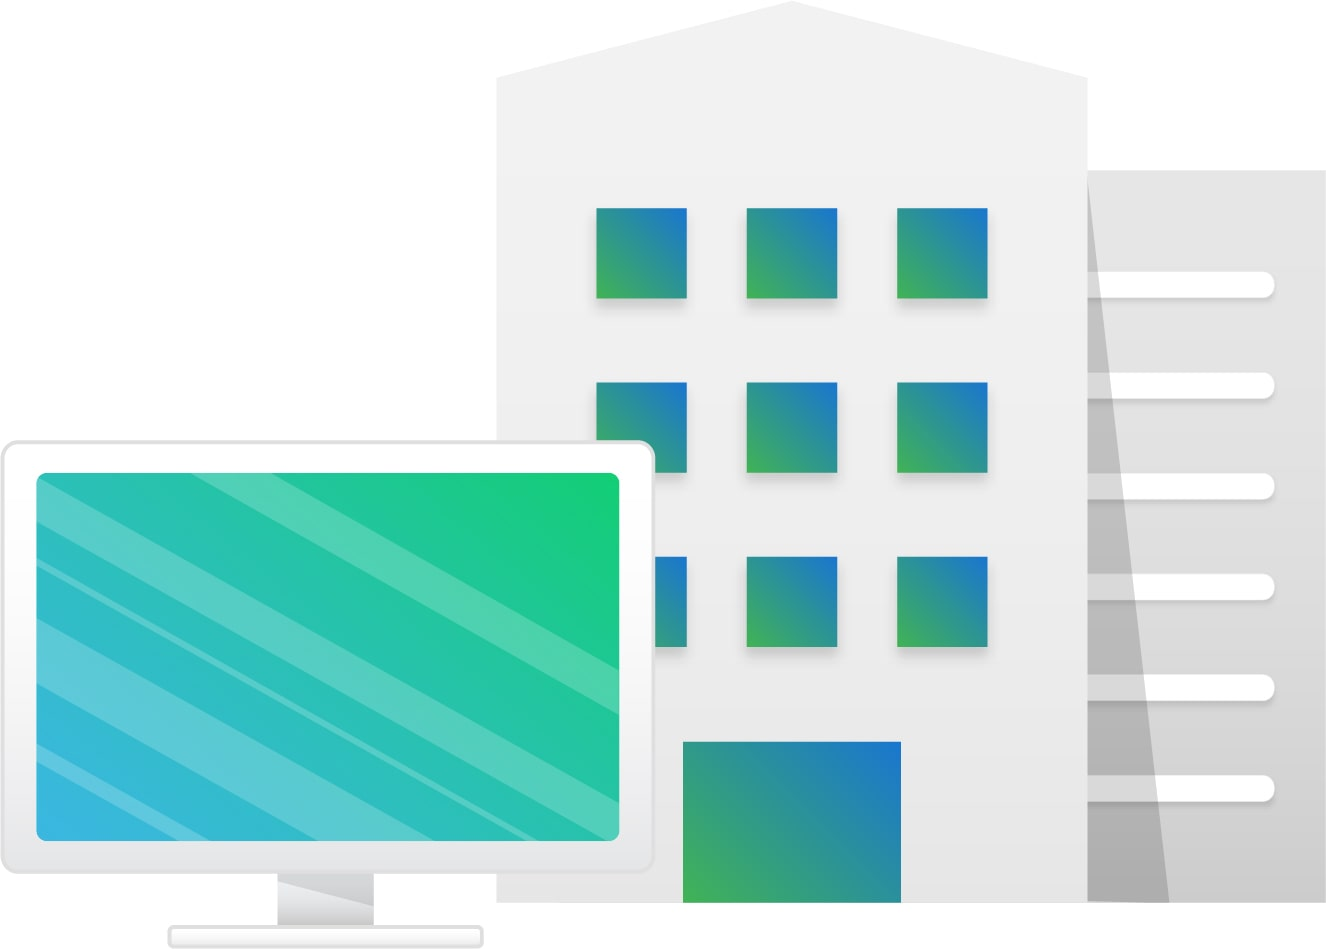 In-office job management software represented by an office building and desktop computer